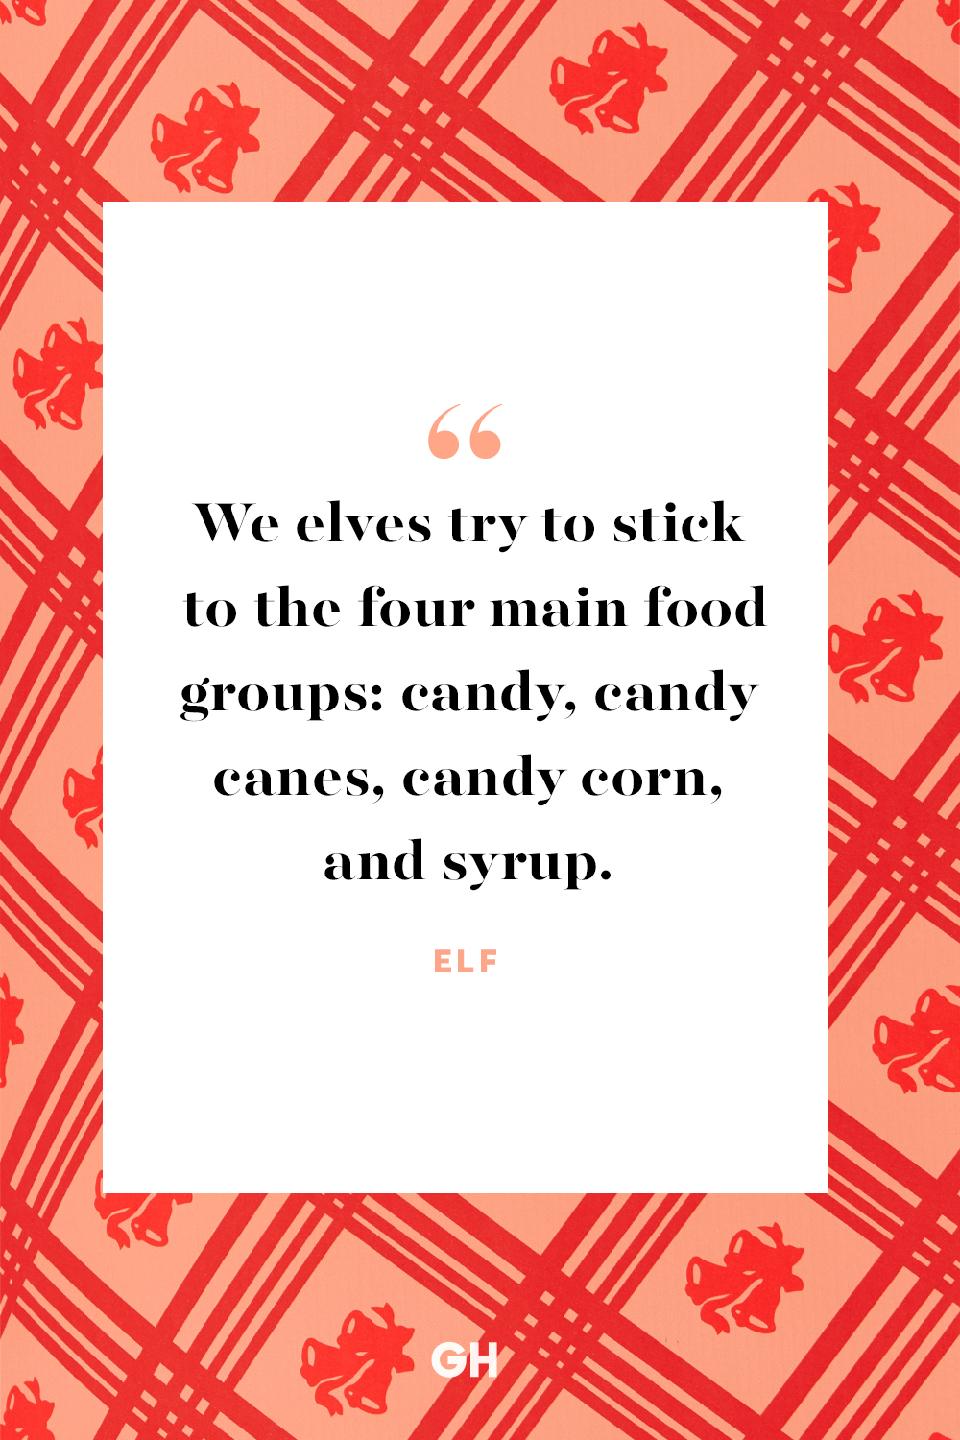 <p>We elves try to stick to the four main food groups: candy, candy canes, candy corn, and syrup.</p>